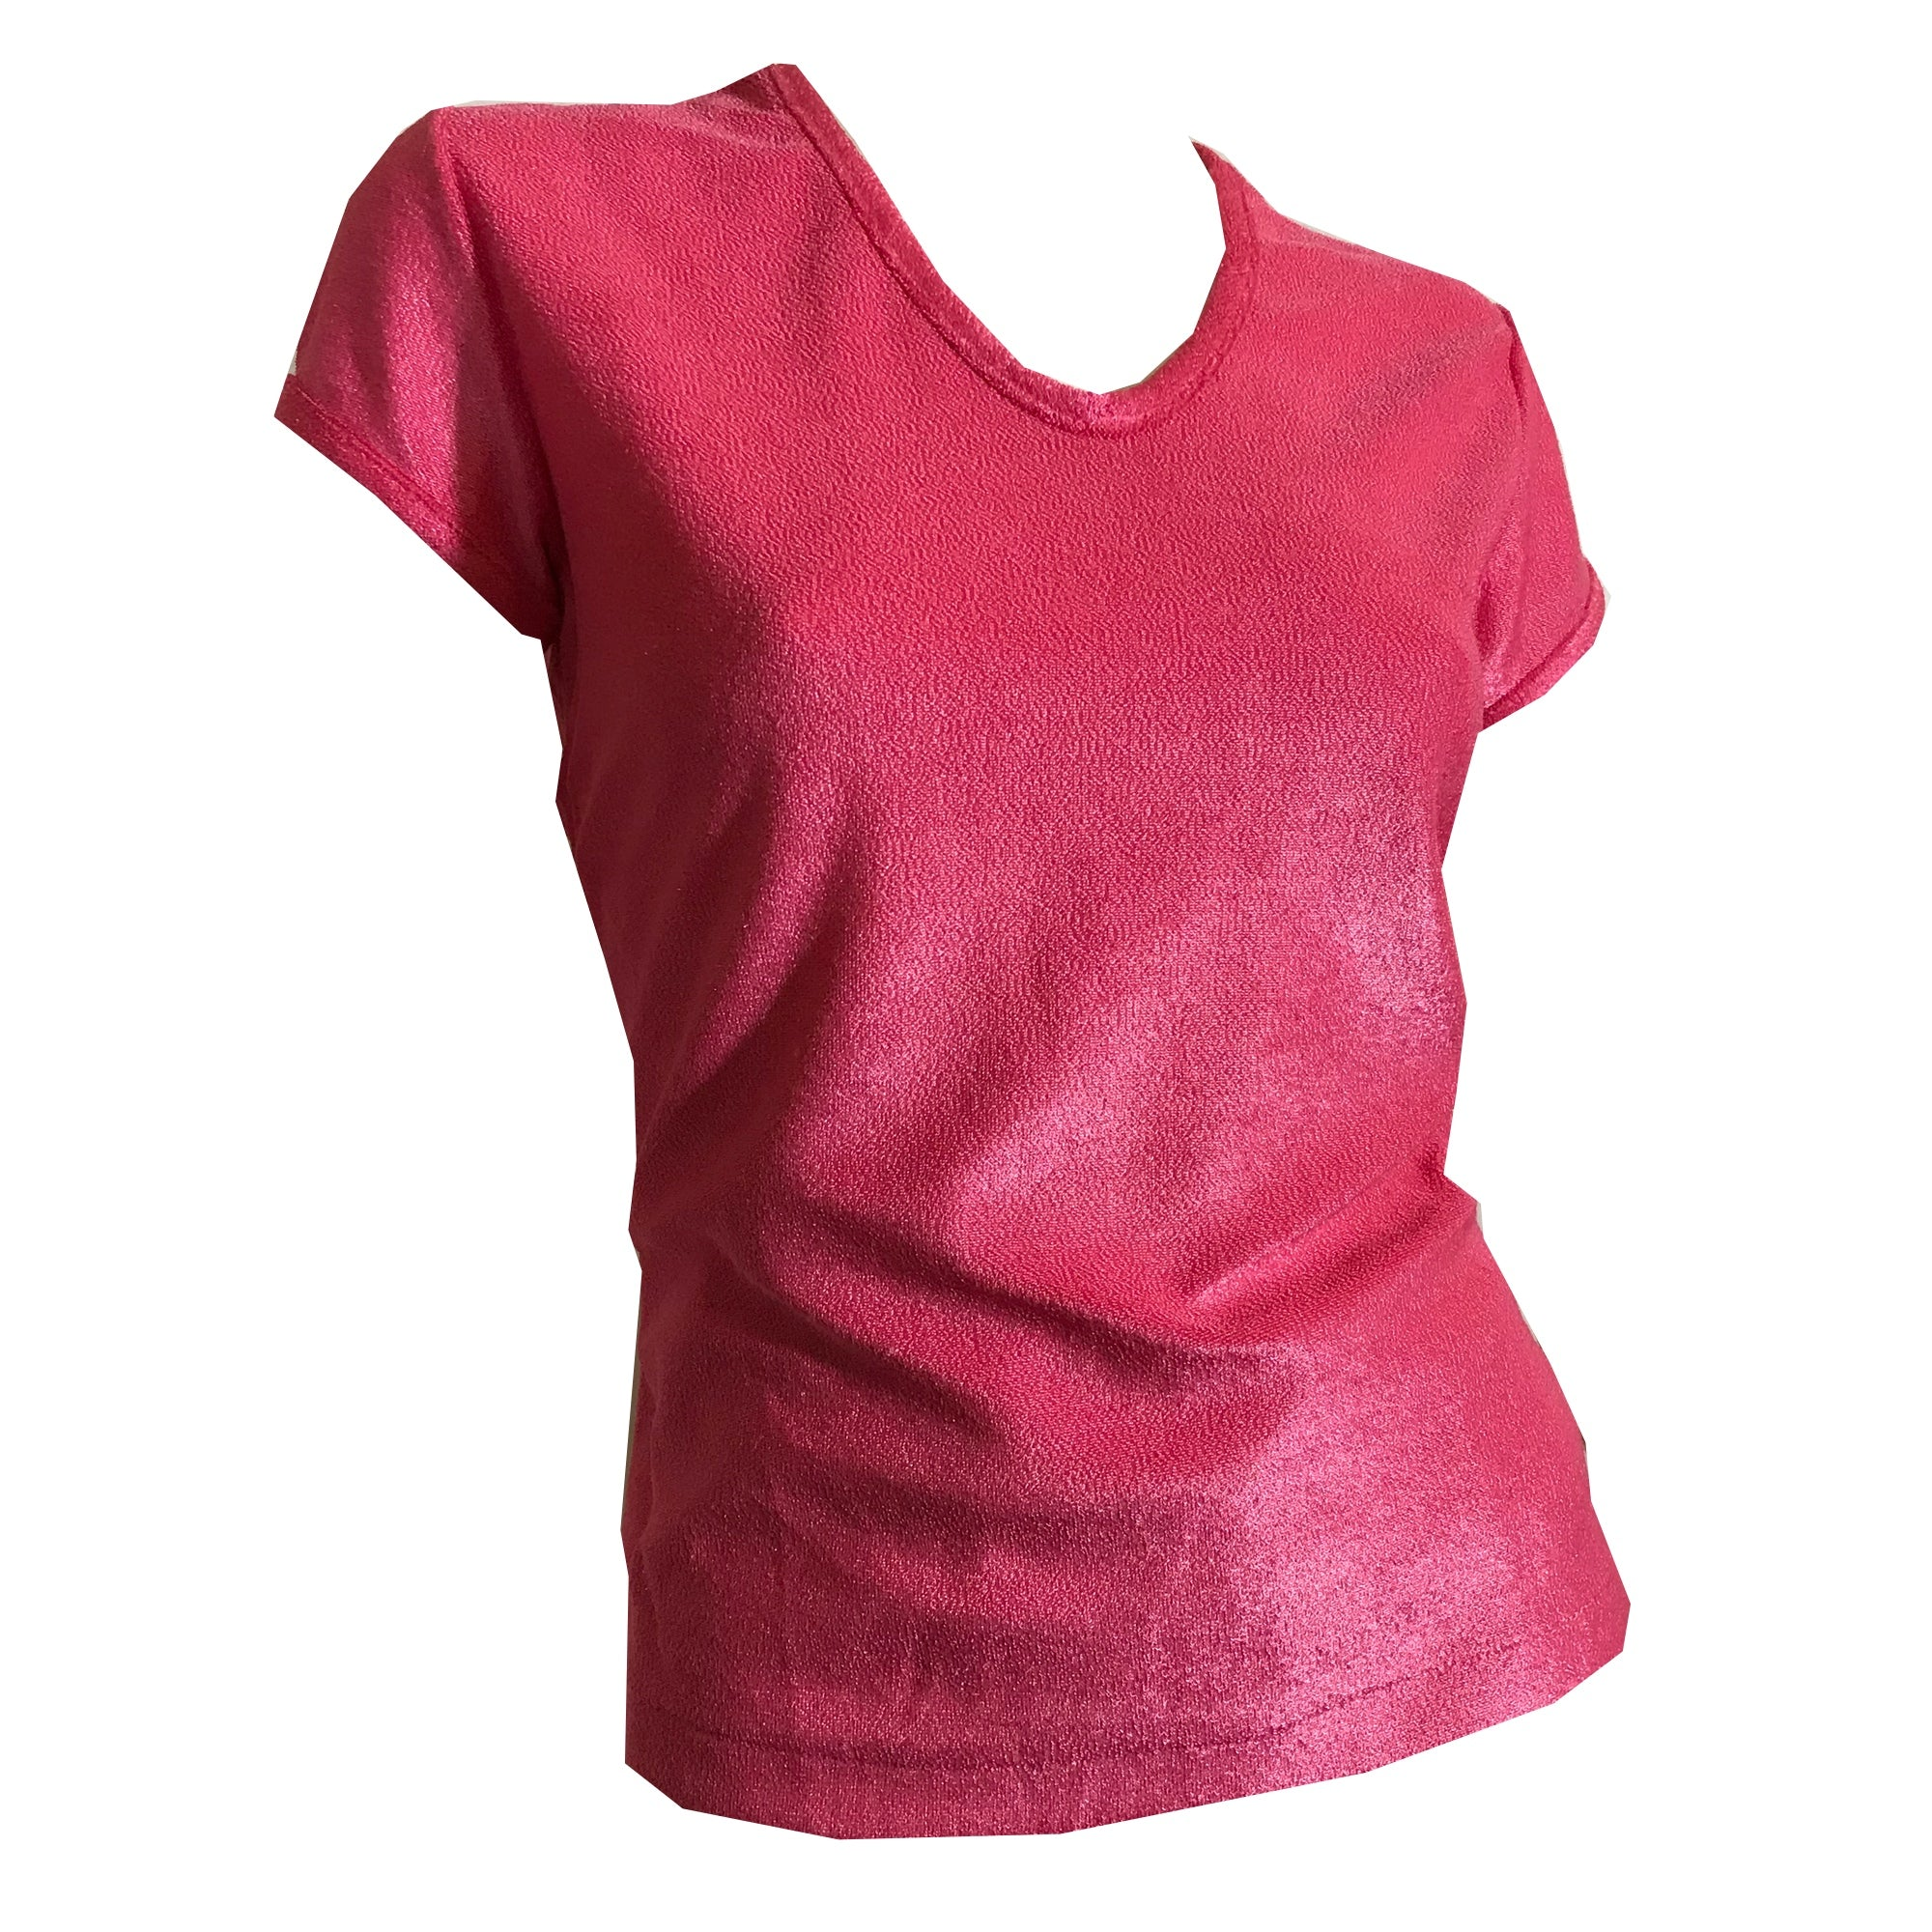 Shiny Terry Cloth Tee Shirt in PINK circa 1970s